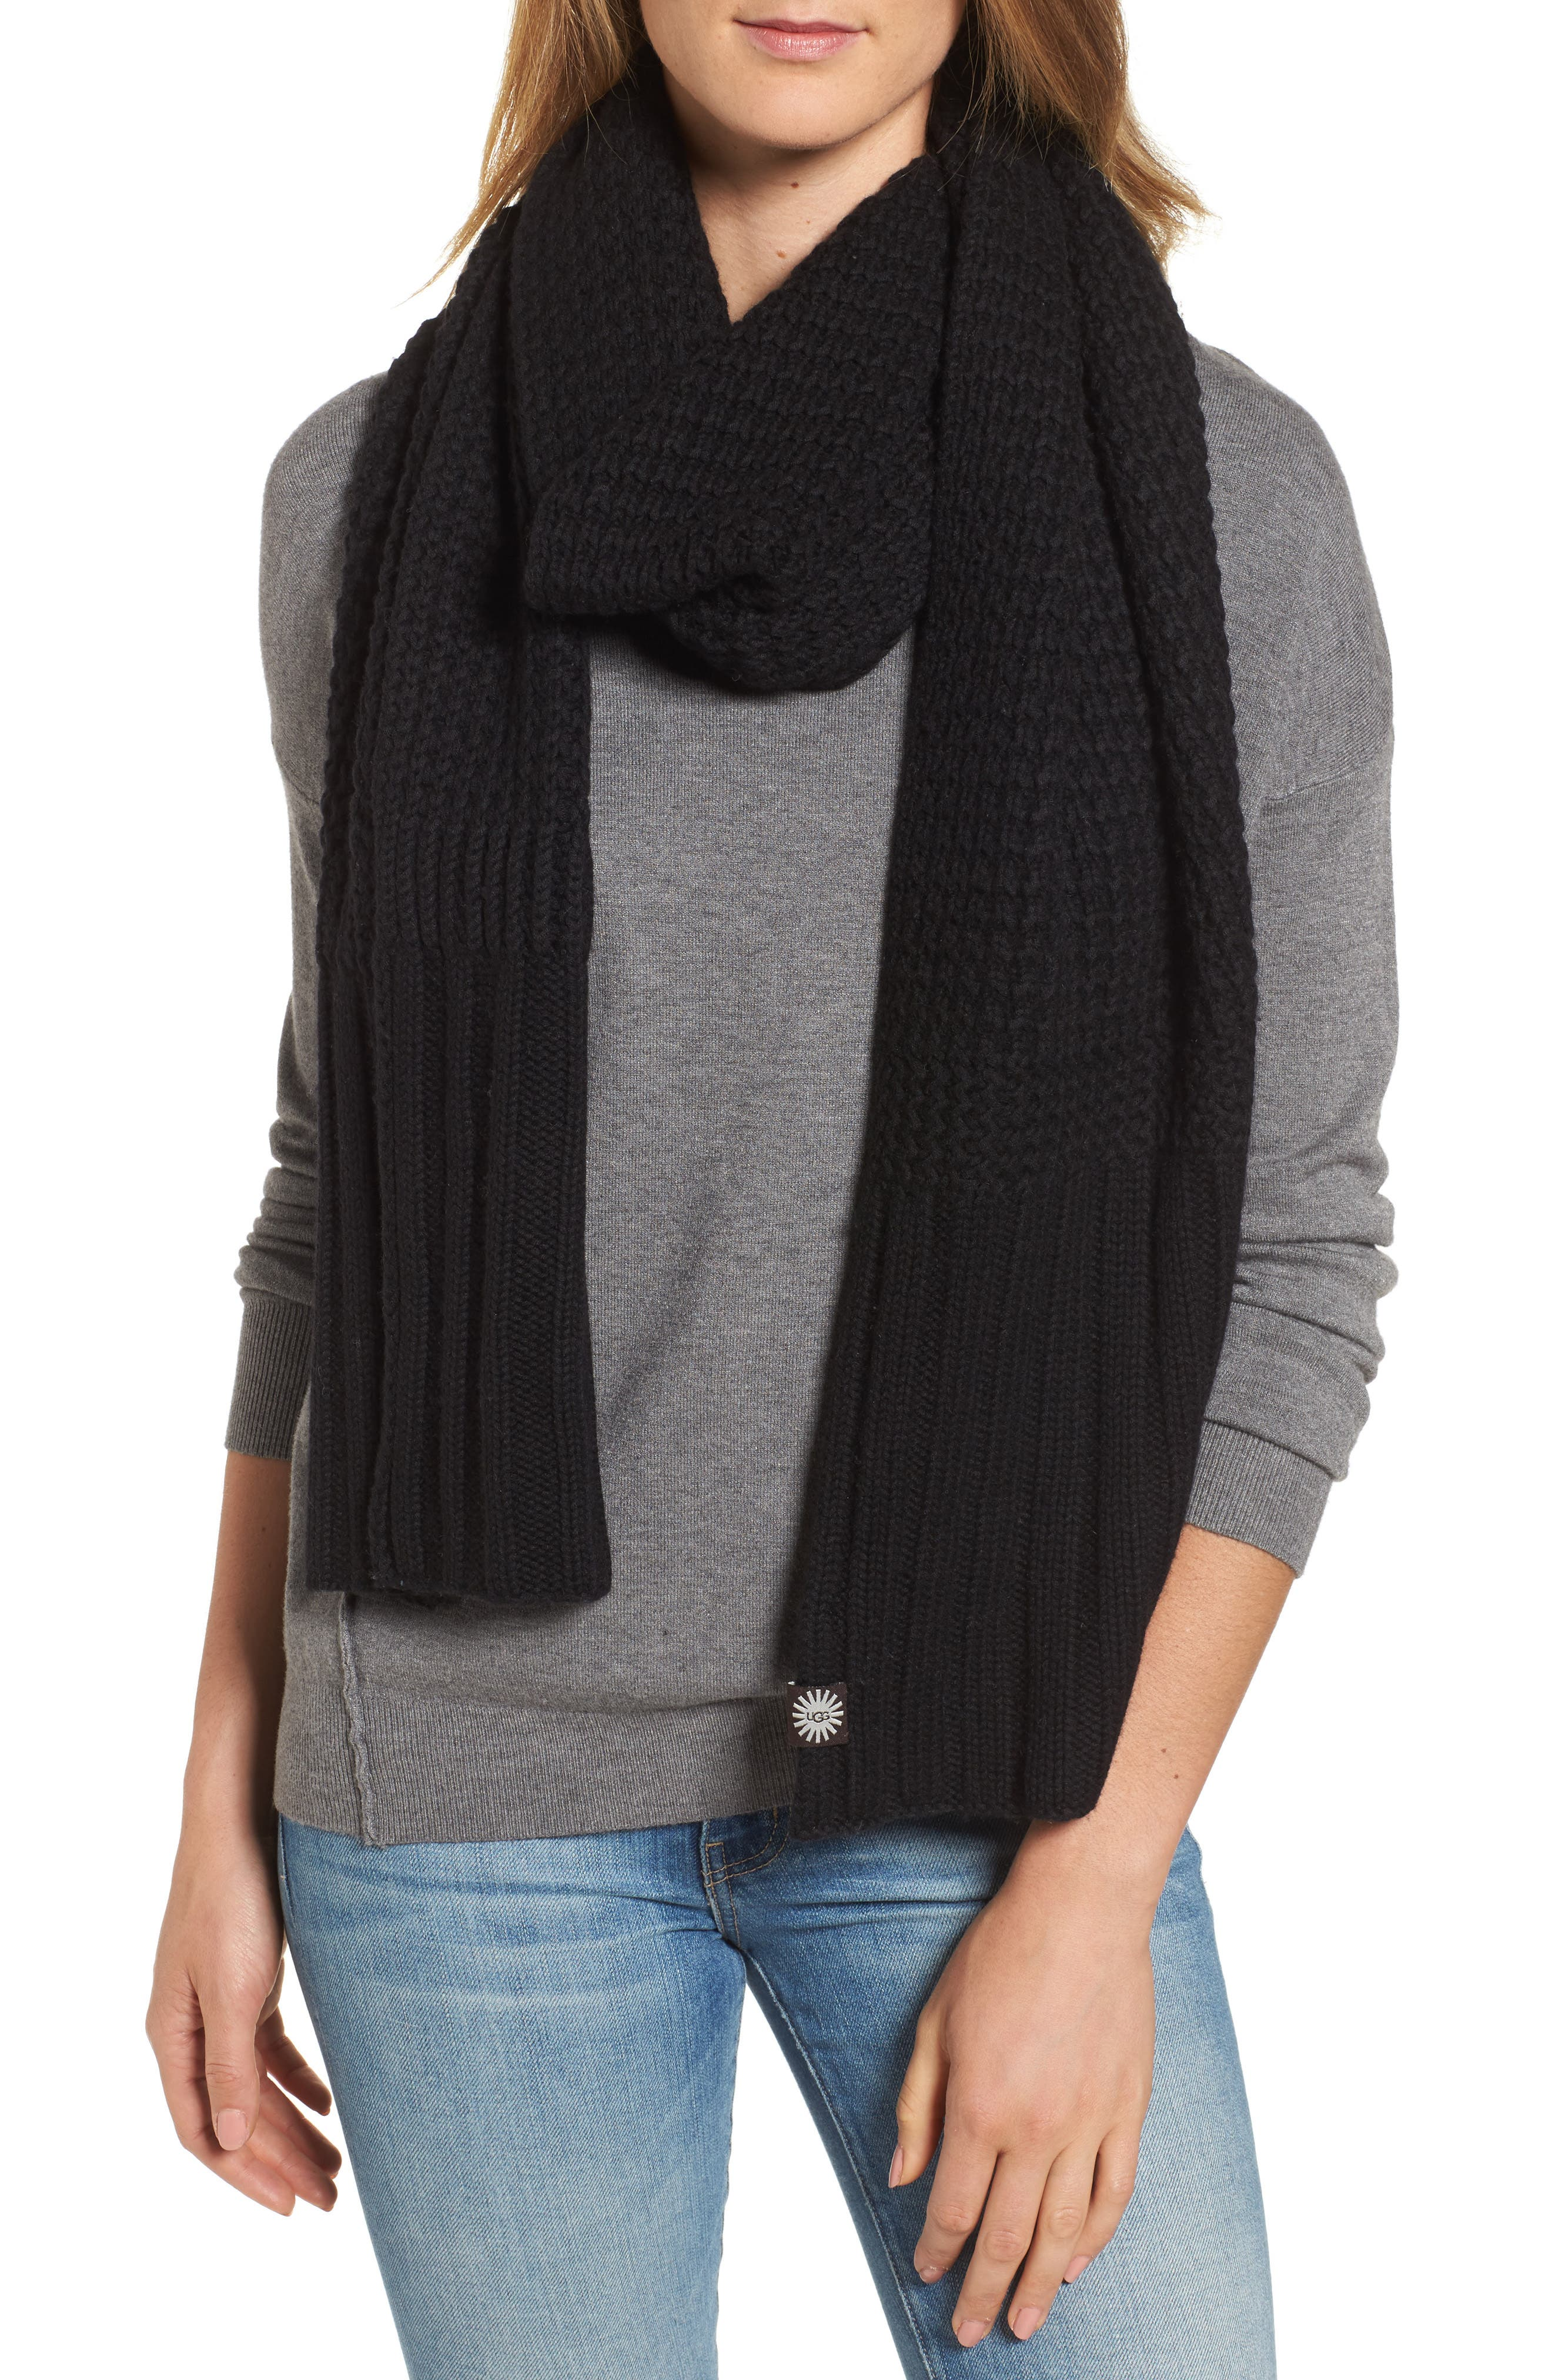 UGG<sup>®</sup> Textured Wool Blend Cardi Scarf,                         Main,                         color, 001